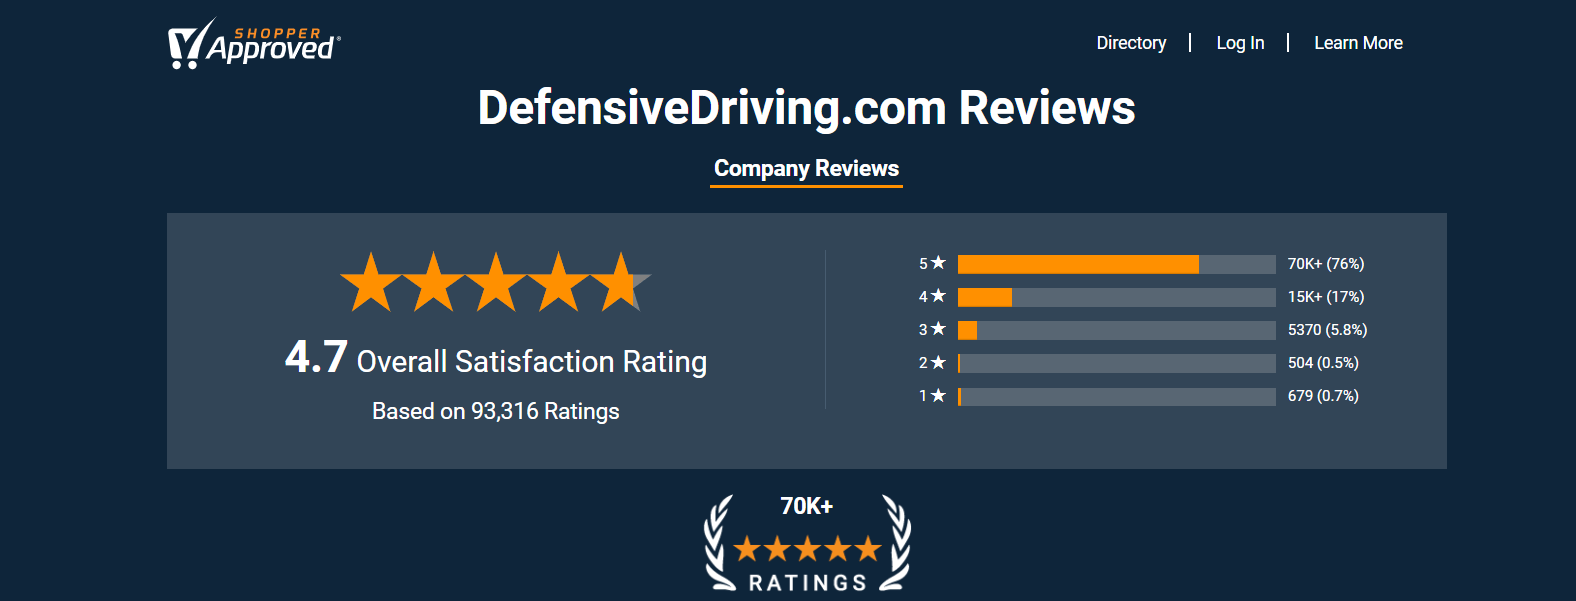 DefensiveDriving.com ShopperApproved Rating 2-7-20